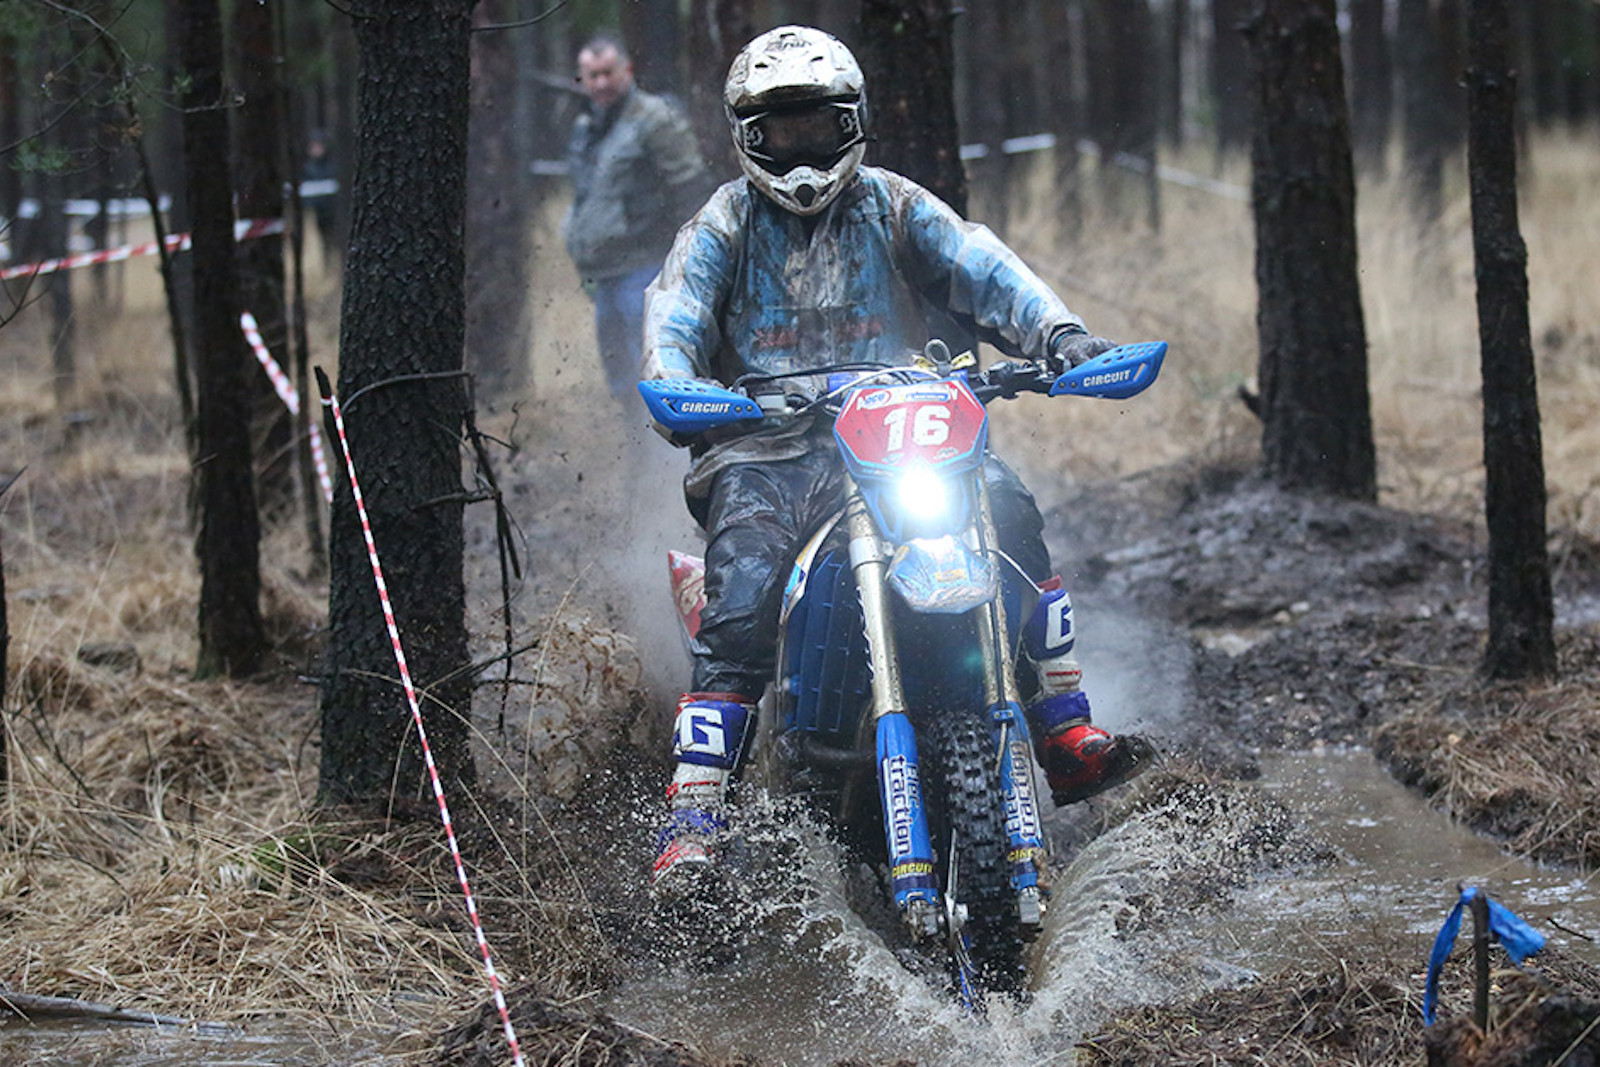 2020 ACU Michelin British Enduro Championship cancelled